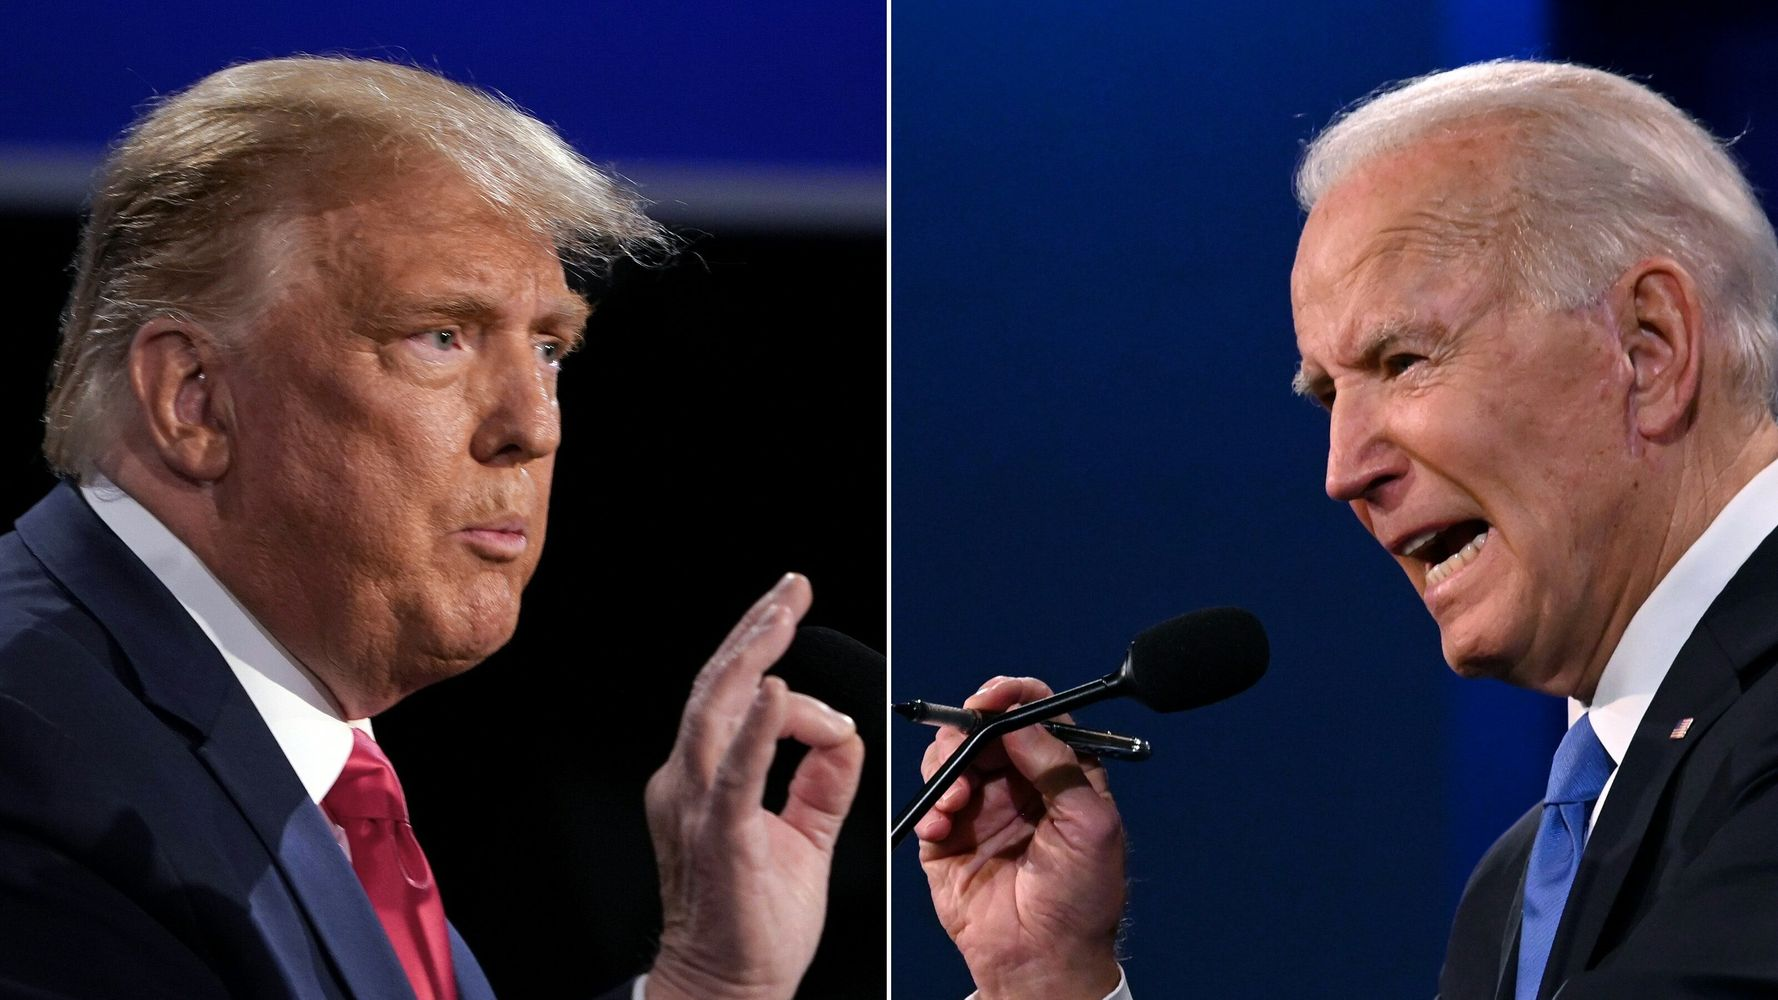 Medical Leaders Urge Trump To Share COVID-19 Data With Biden